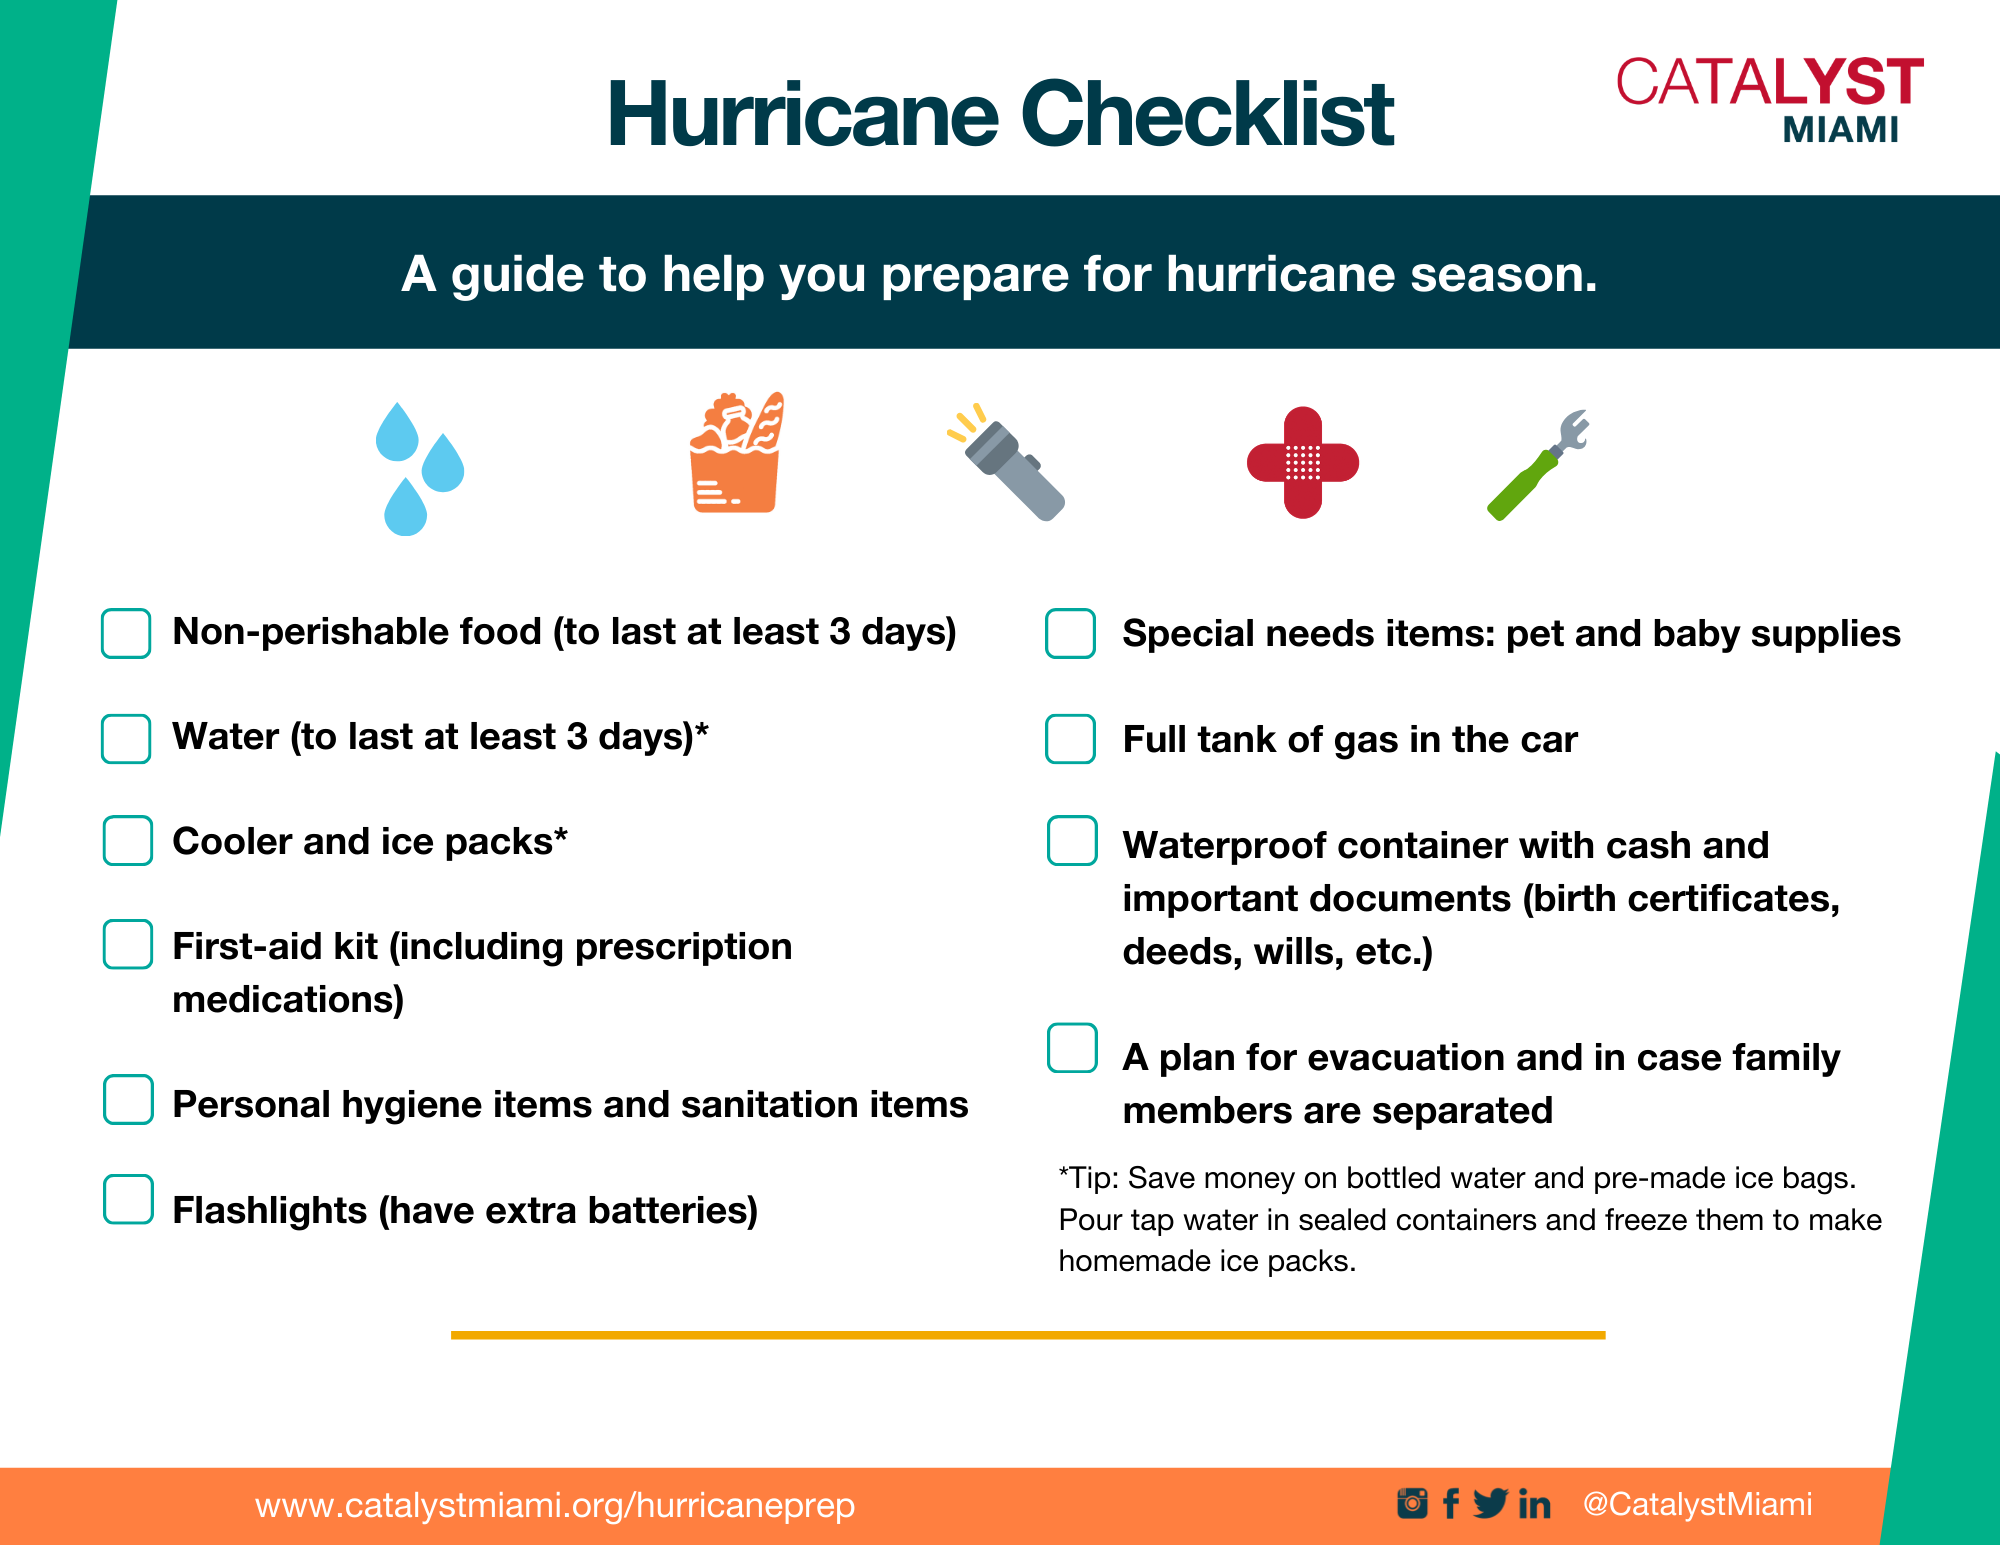 Hurricane_Checklist_8.5x11_Flyer_(3).png